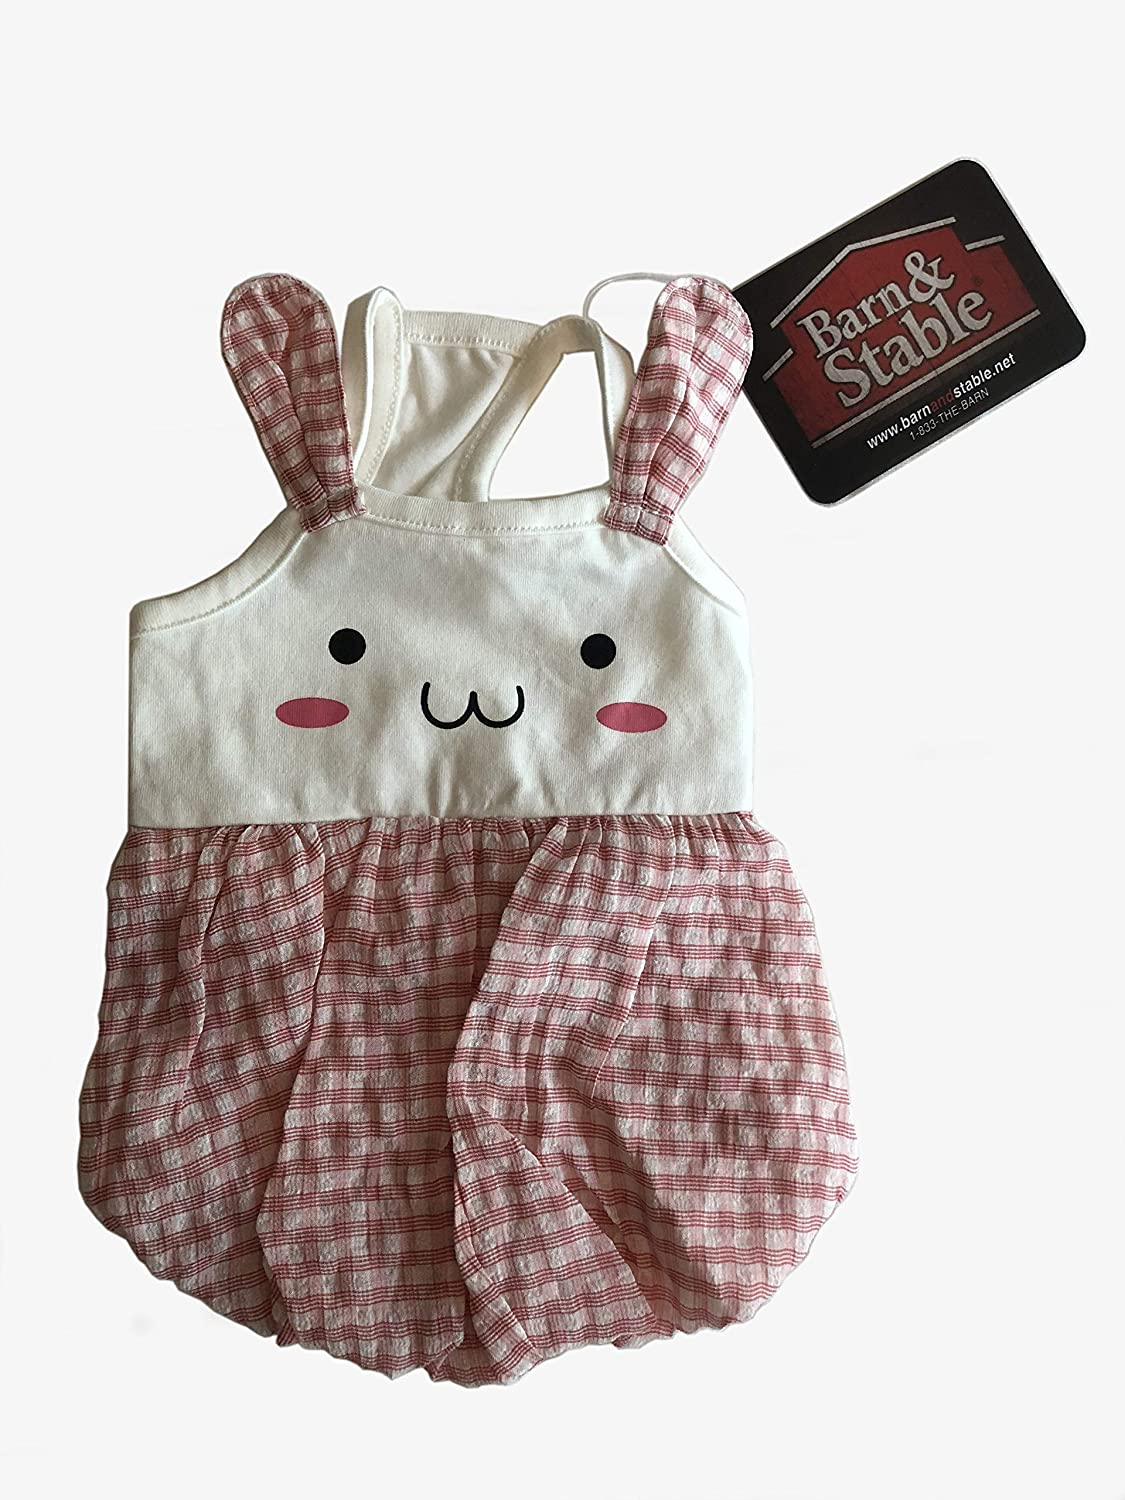 4f11736cca64 Amazon.com : Barn&Stable Cute Girly Pet Dog Cats Clothes/Dress Bunny Summer  Cotton : Sports & Outdoors